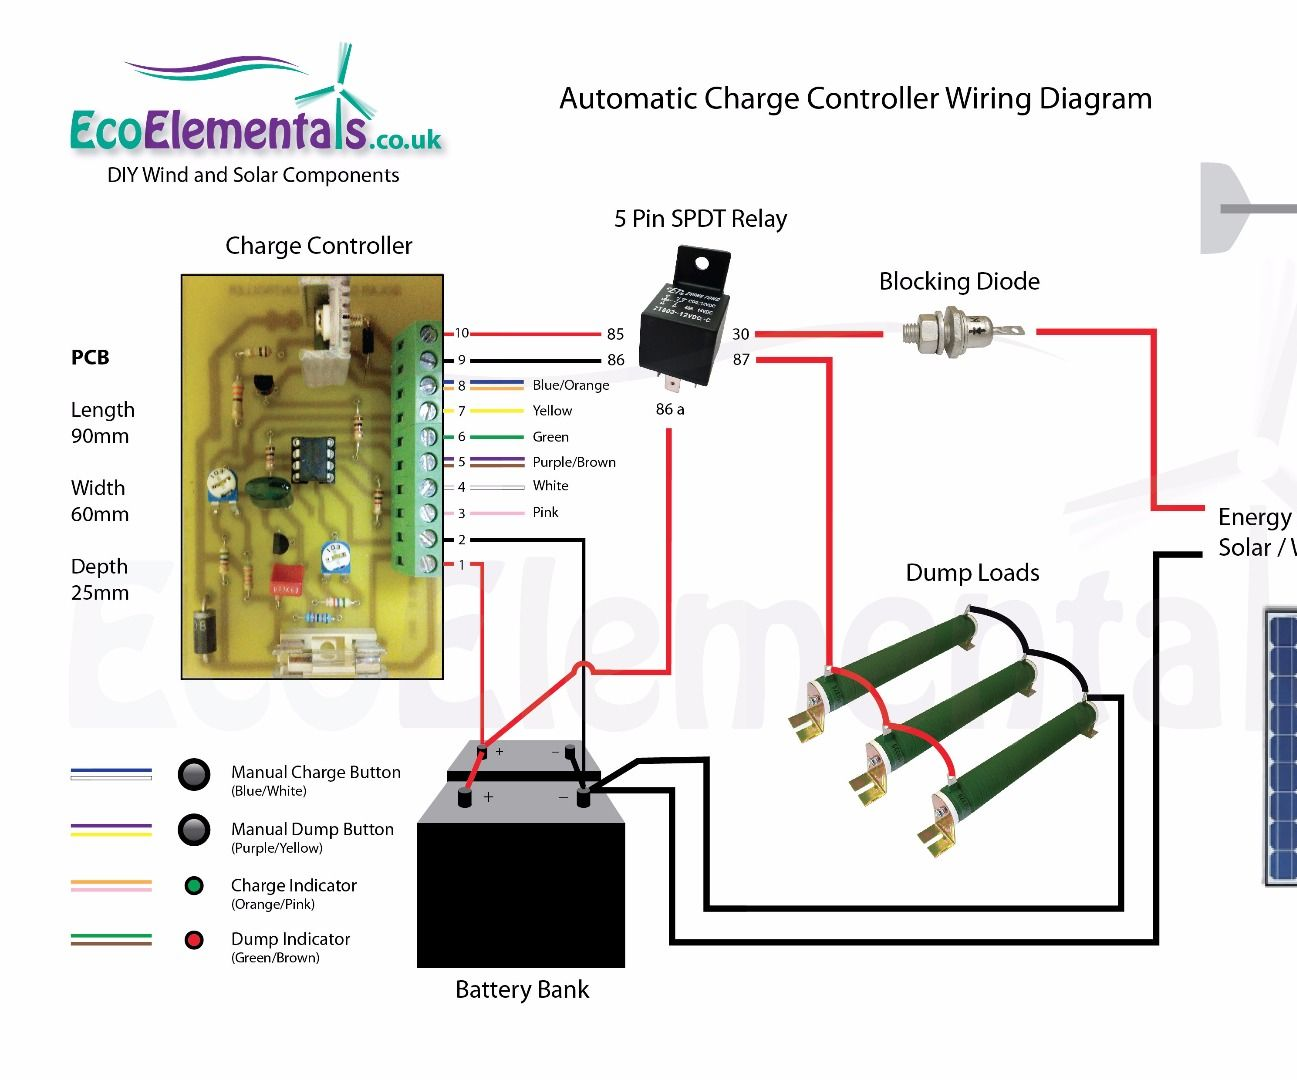 charge controller wiring diagram for diy wind turbine or solar panels rh instructables com home wind turbine wiring diagram wind turbine generator wiring diagram